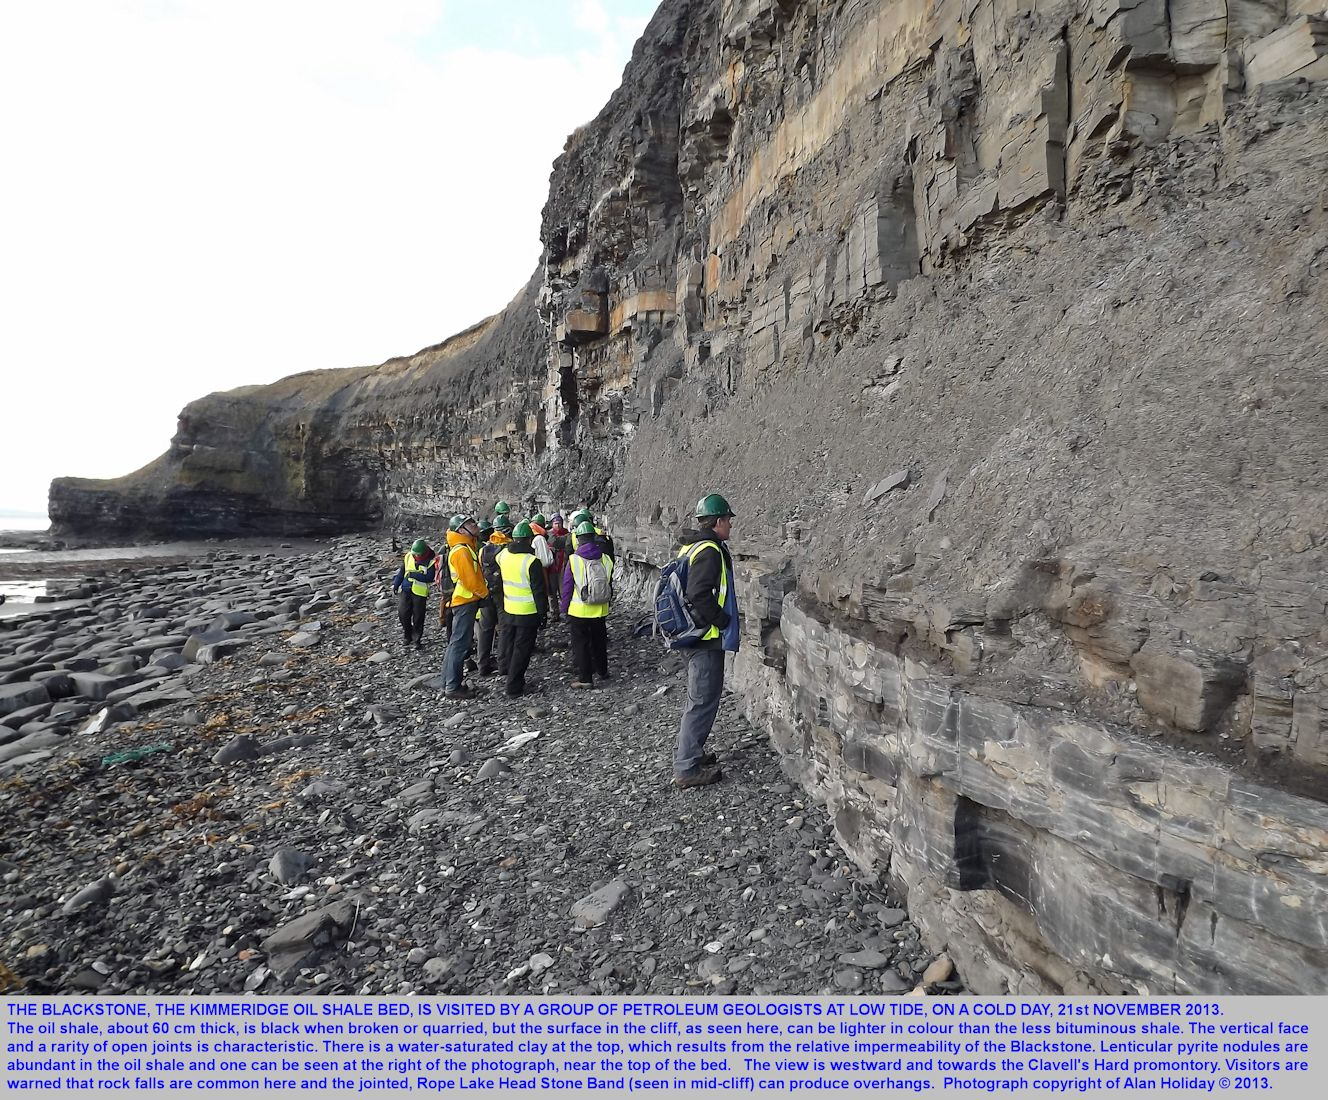 A group of petroleum geologists visits the Kimmeridge Blackstone or oil shale, east of Clavell's Hard, Kimmeridge, Dorset, 21st November 2013